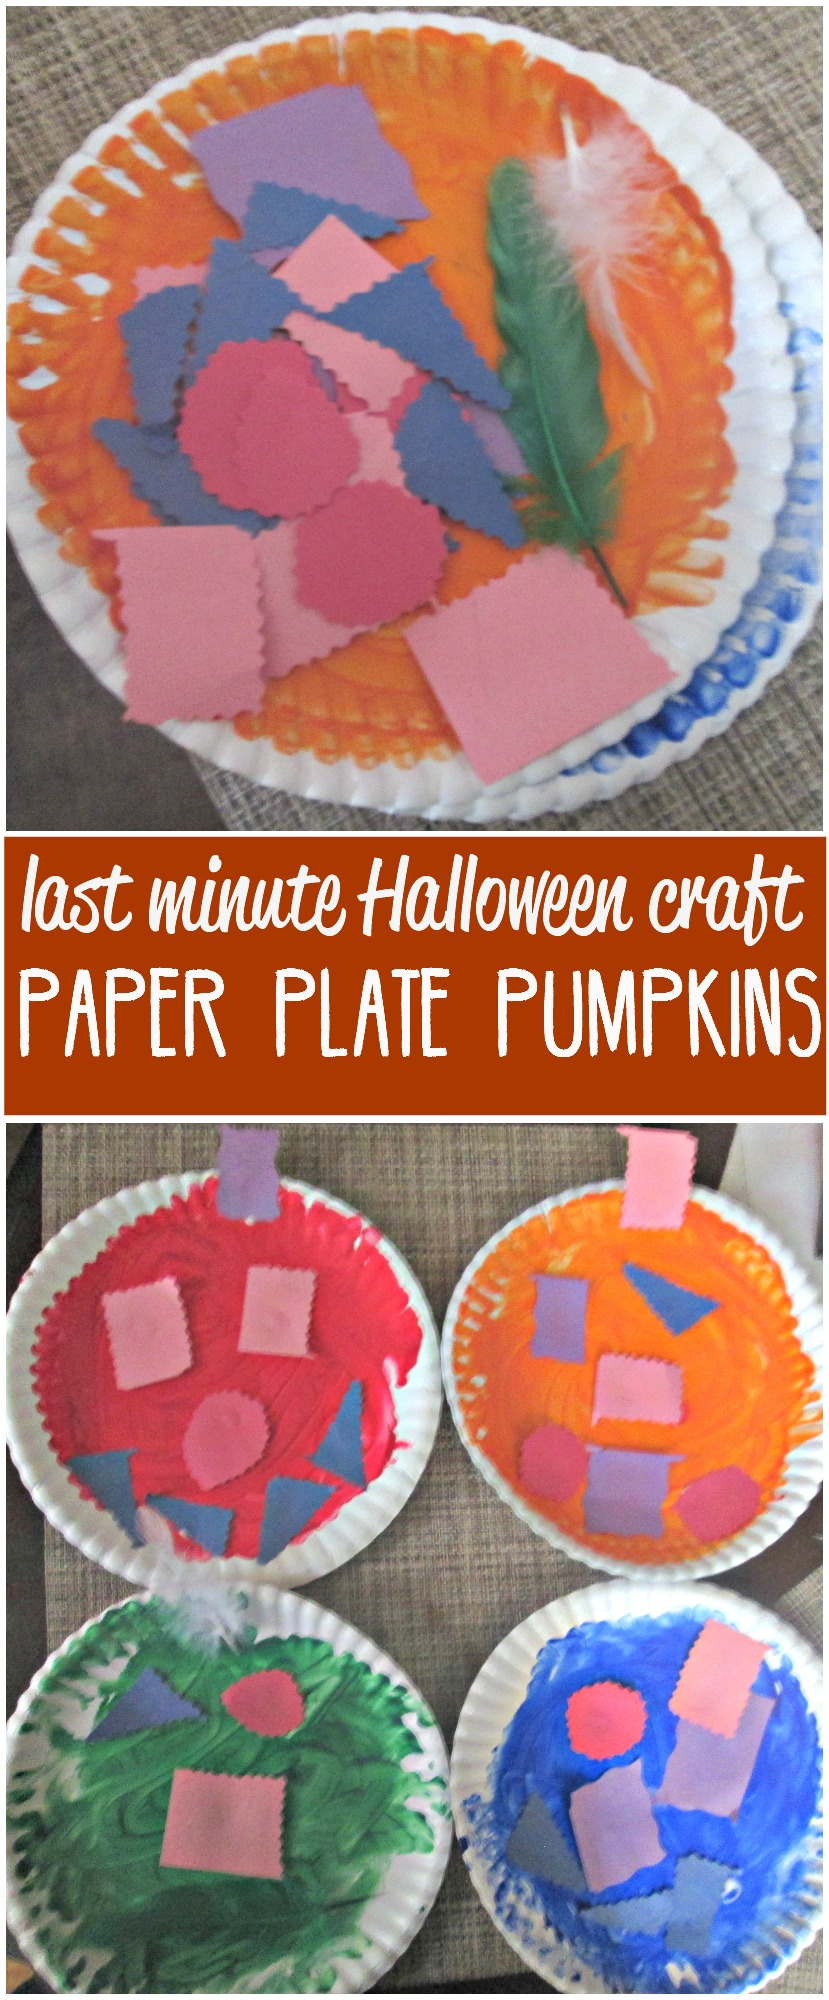 Need an easy last minute Halloween activity? Try these paper plate pumpkins! We also worked on numbers, shapes, and colors while we made them.